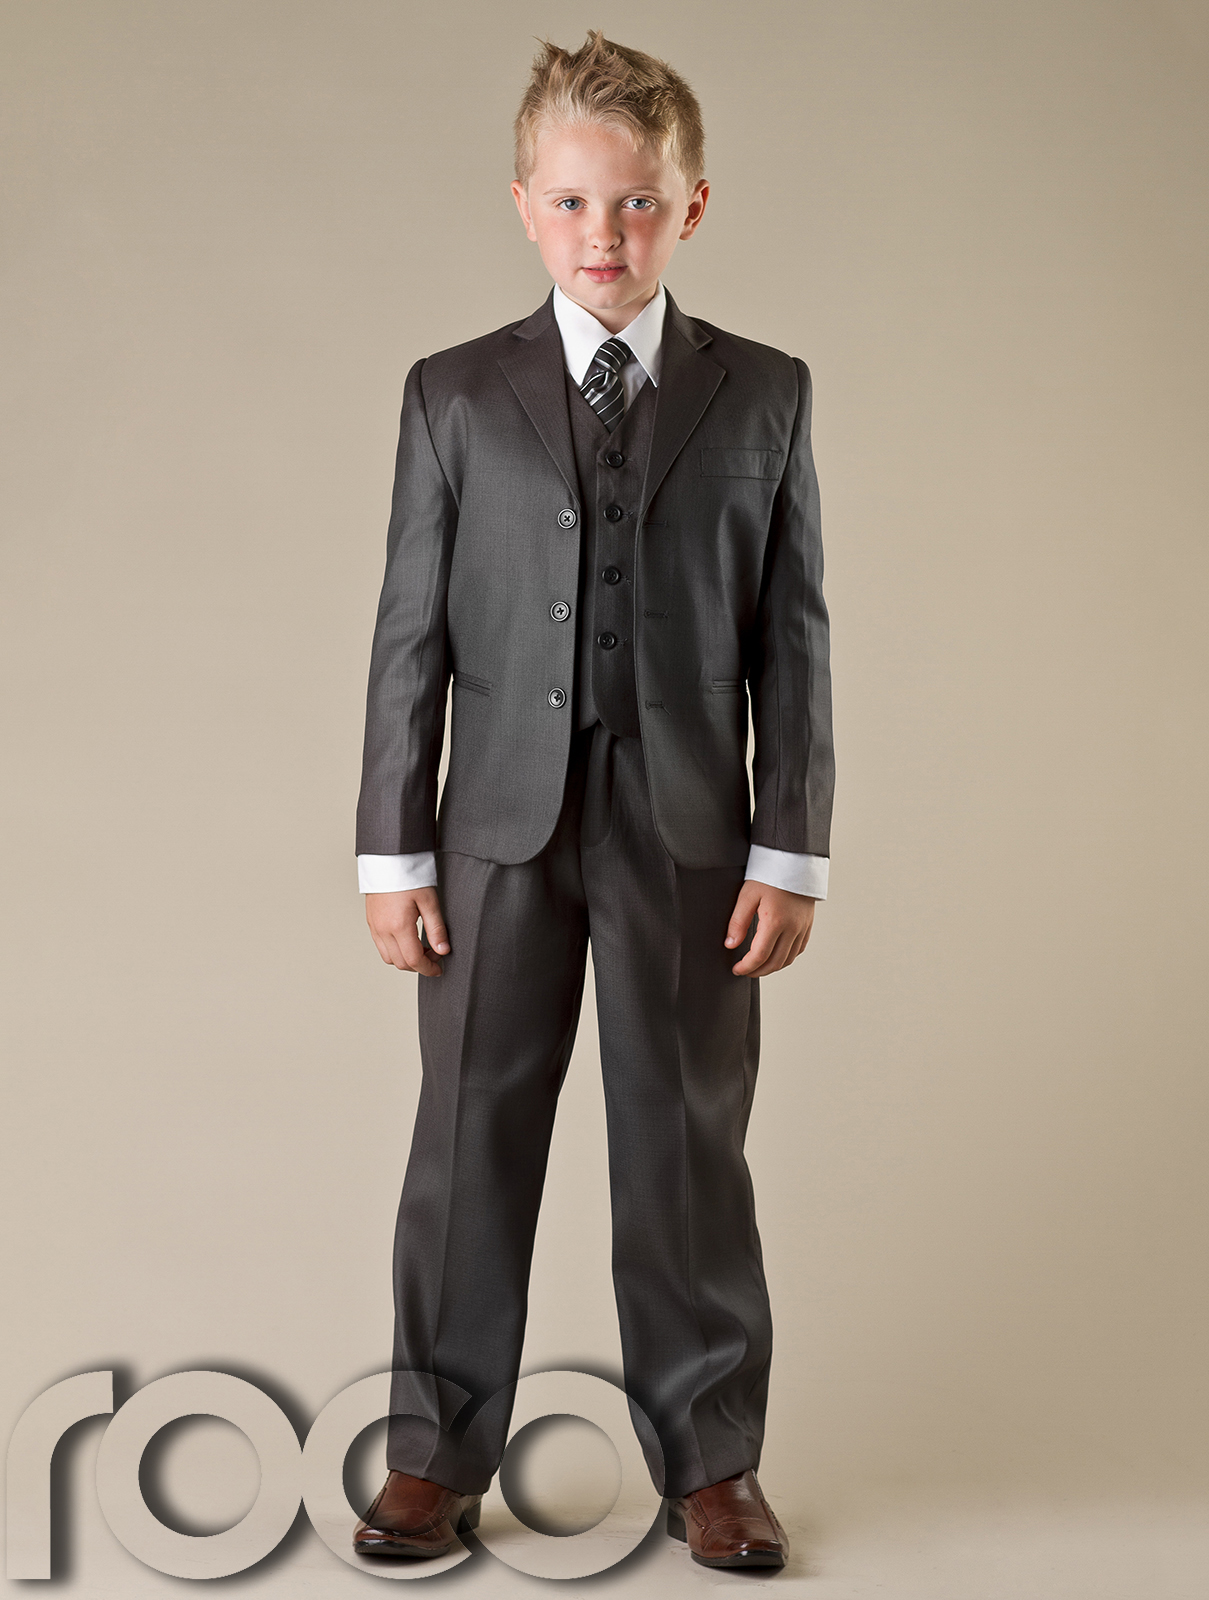 Boys Grey Suit, Communion Suit, Formal Prom Suits, Wedding Suits, 1 ...